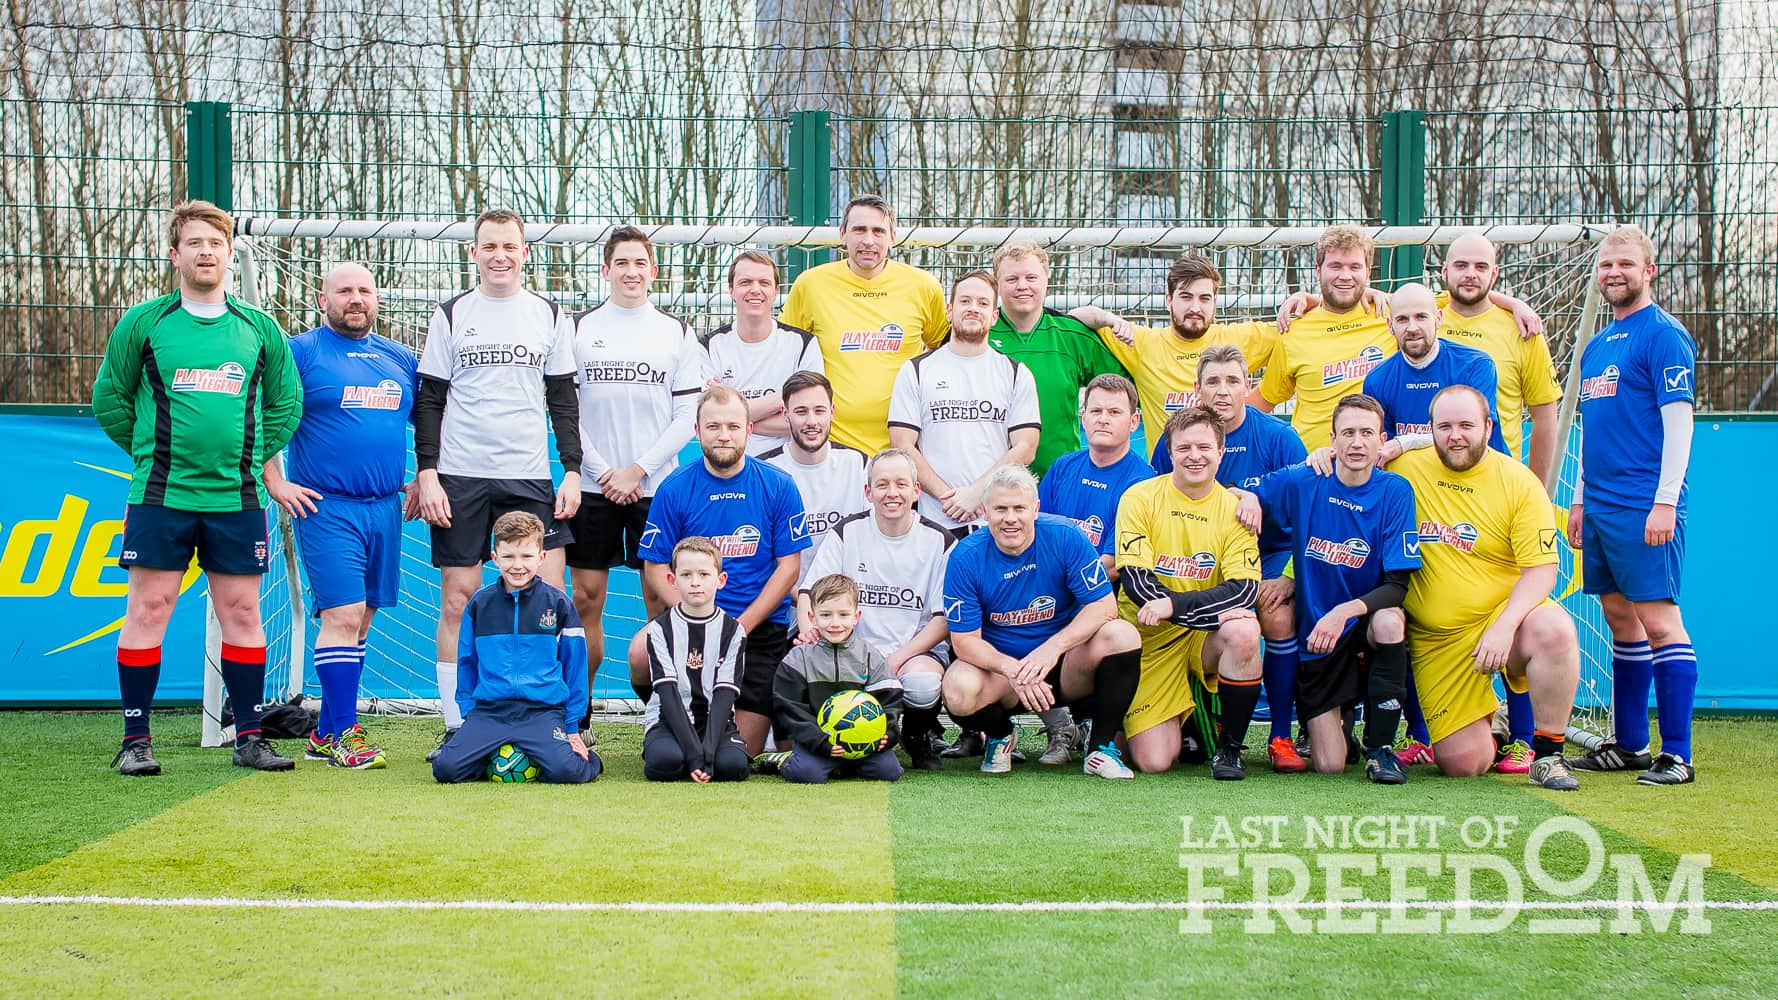 Group of men in football kits posing with former footballer Rob Lee